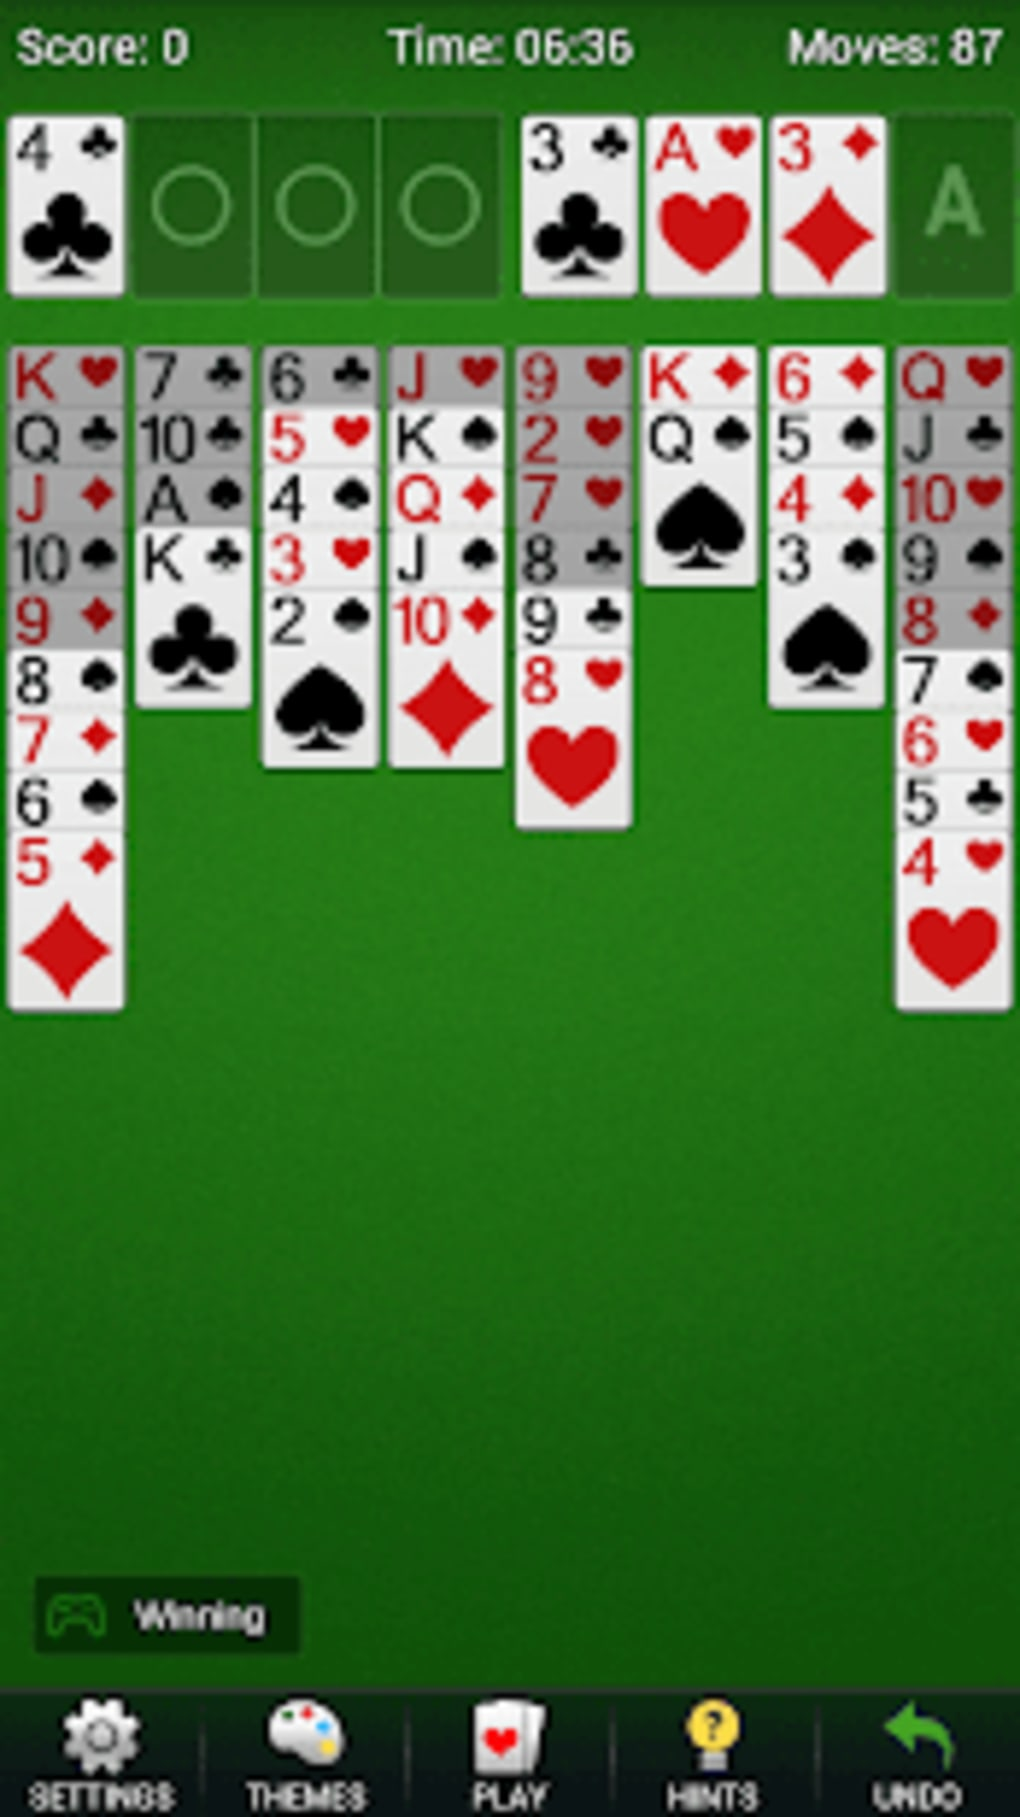 FreeCell Solitaire - Classic Card Games for Android - Download